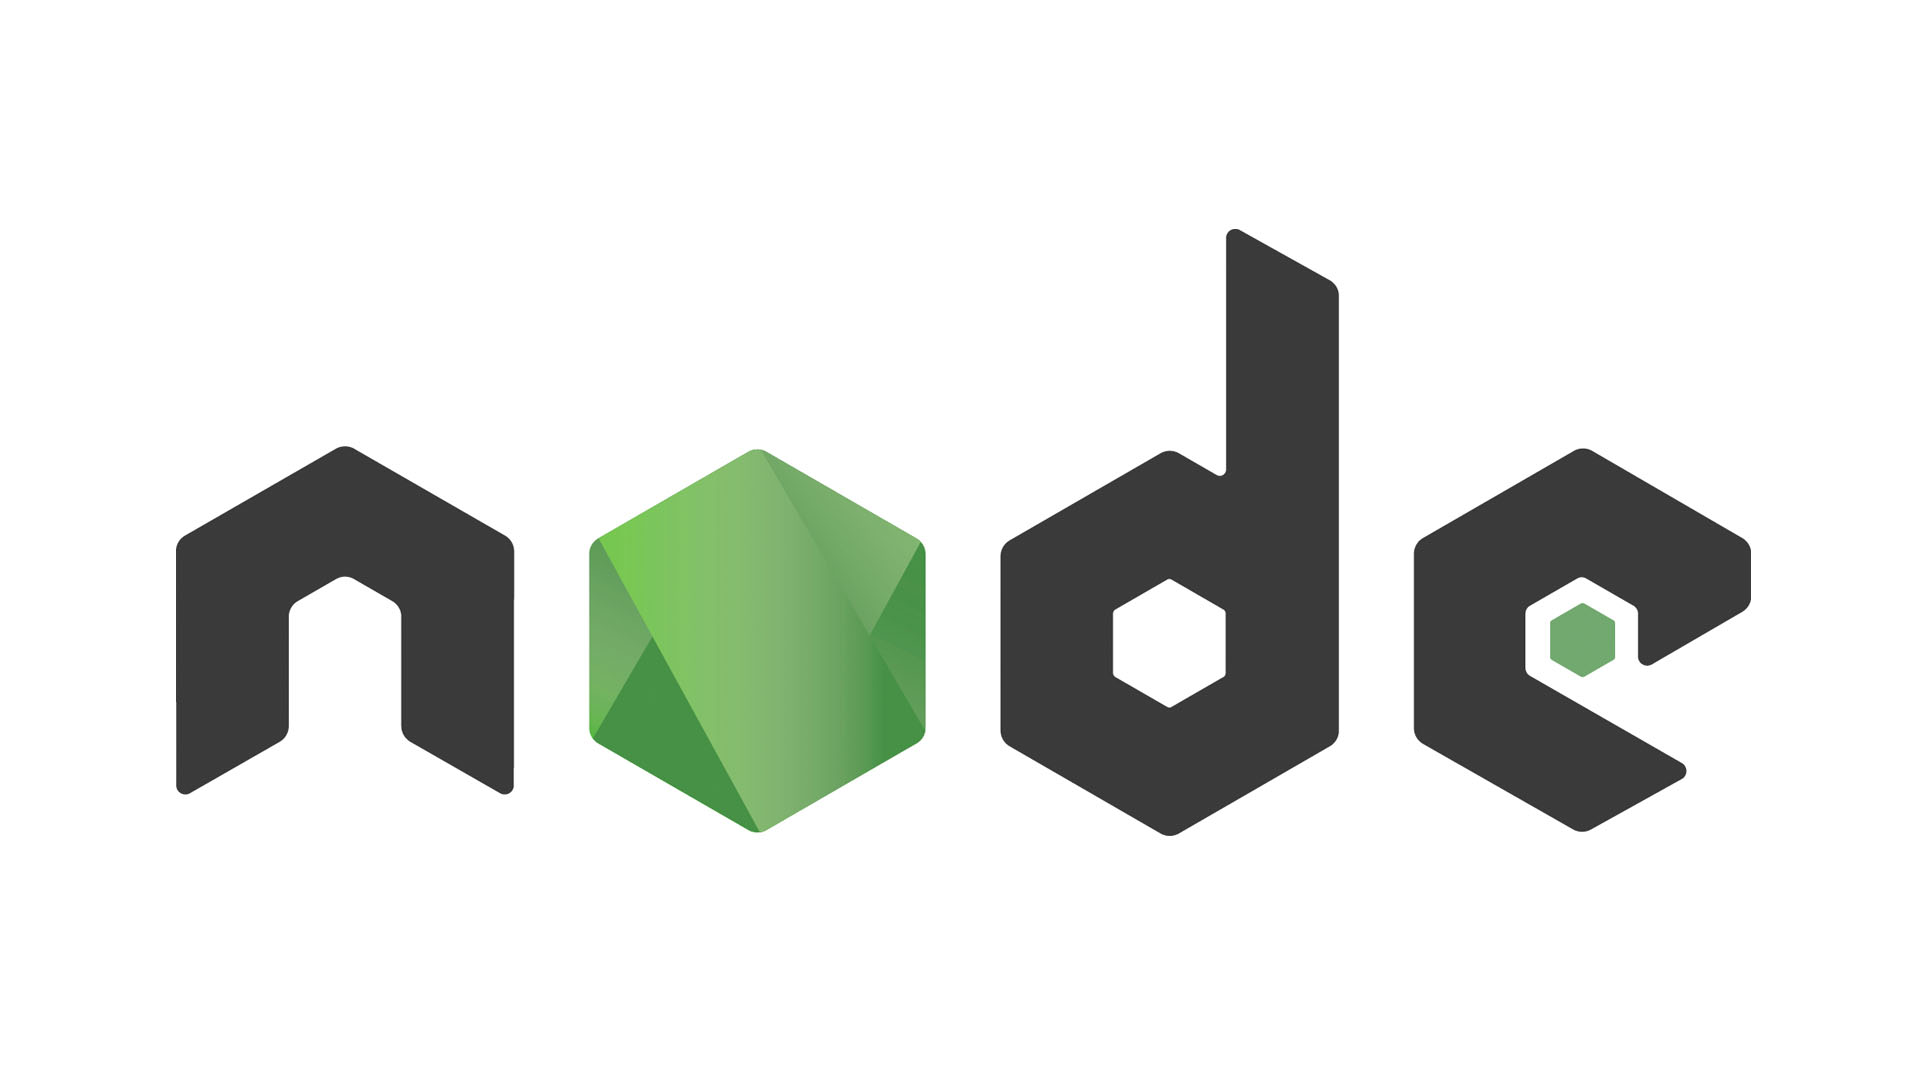 Deploy Resilient Node js Apps to Ubuntu with Forever and Nginx